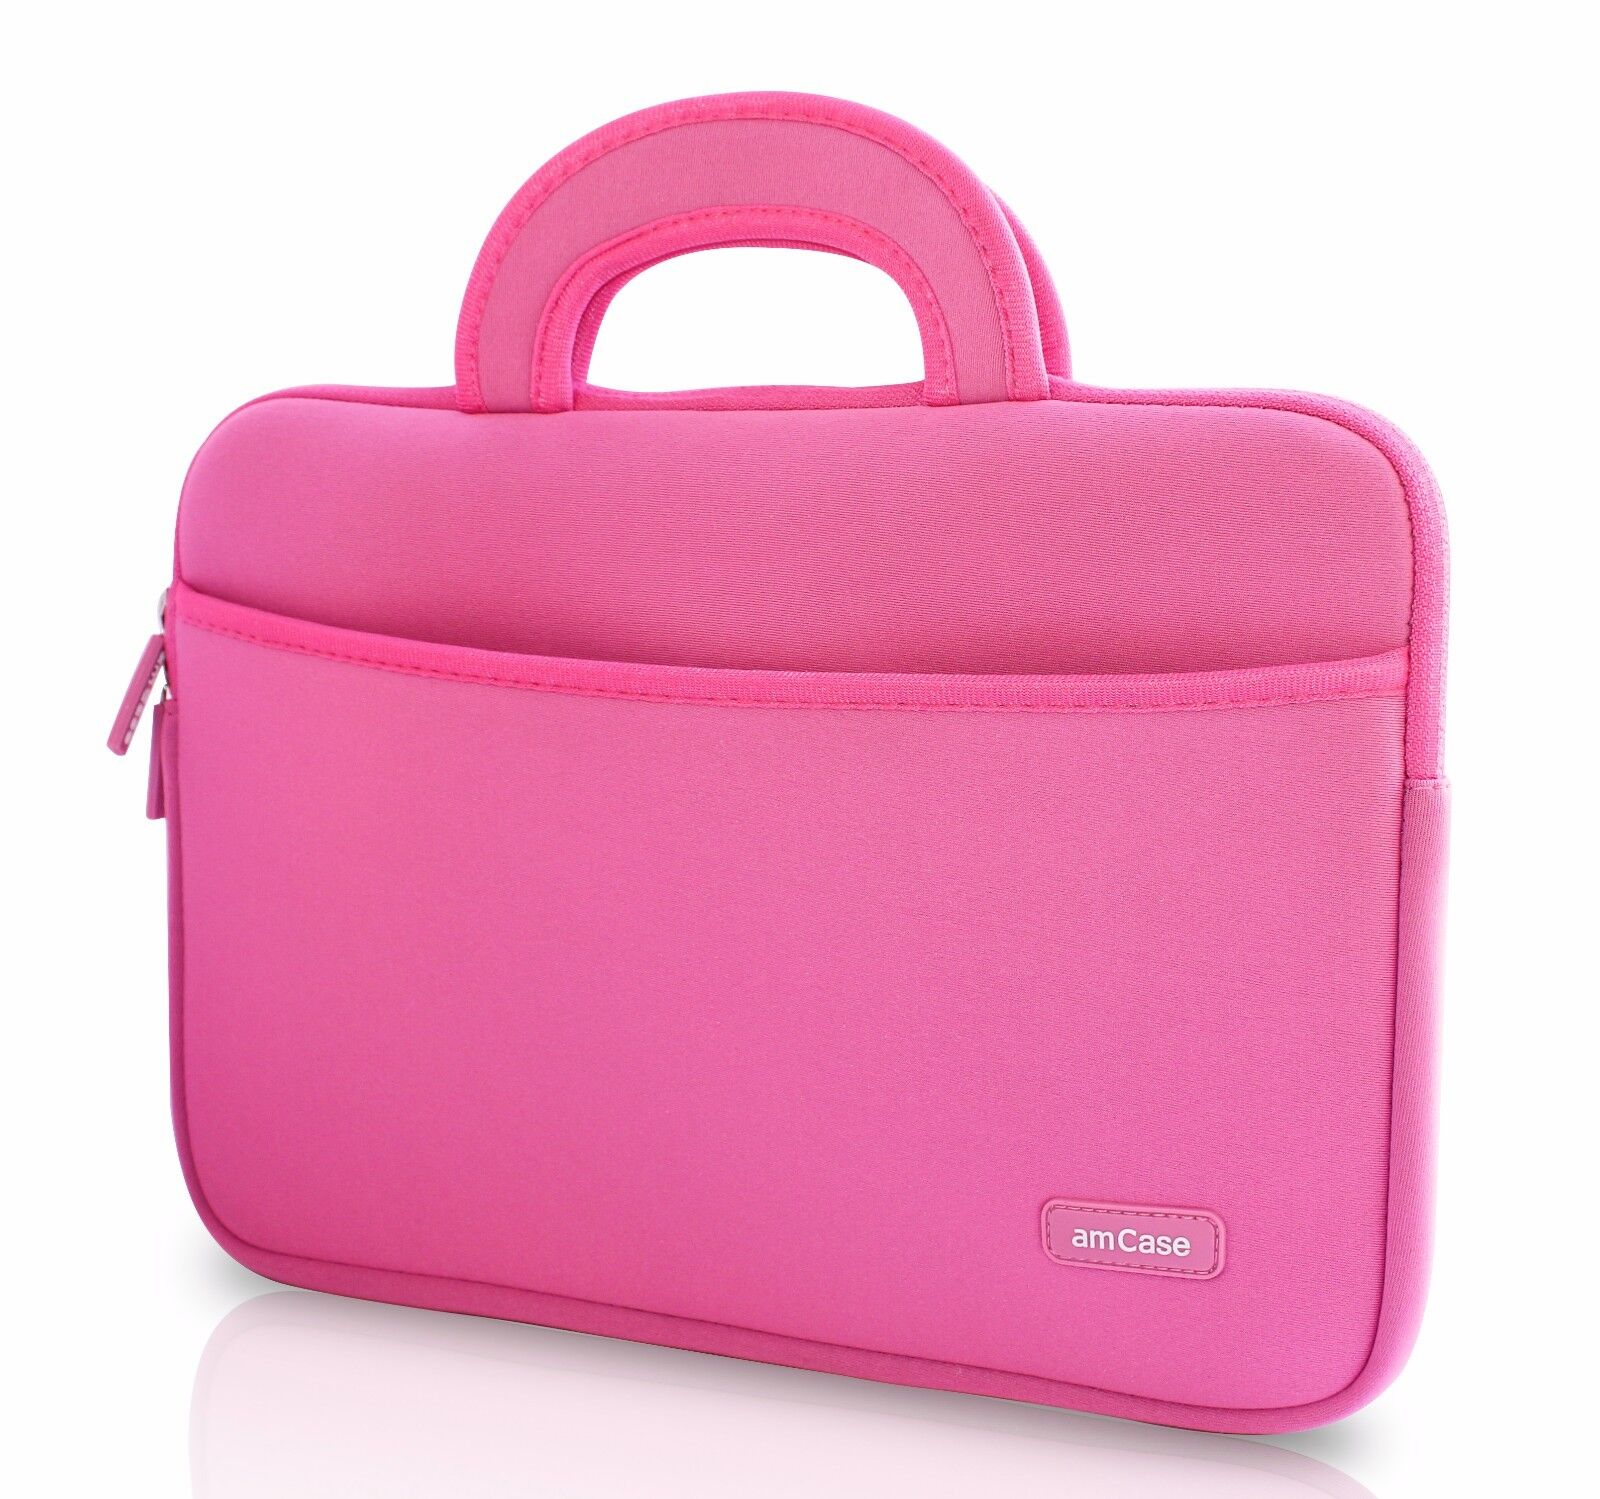 Chromebook Case, amCase 11.6 to 12 inch Sleeve/Case for Acer